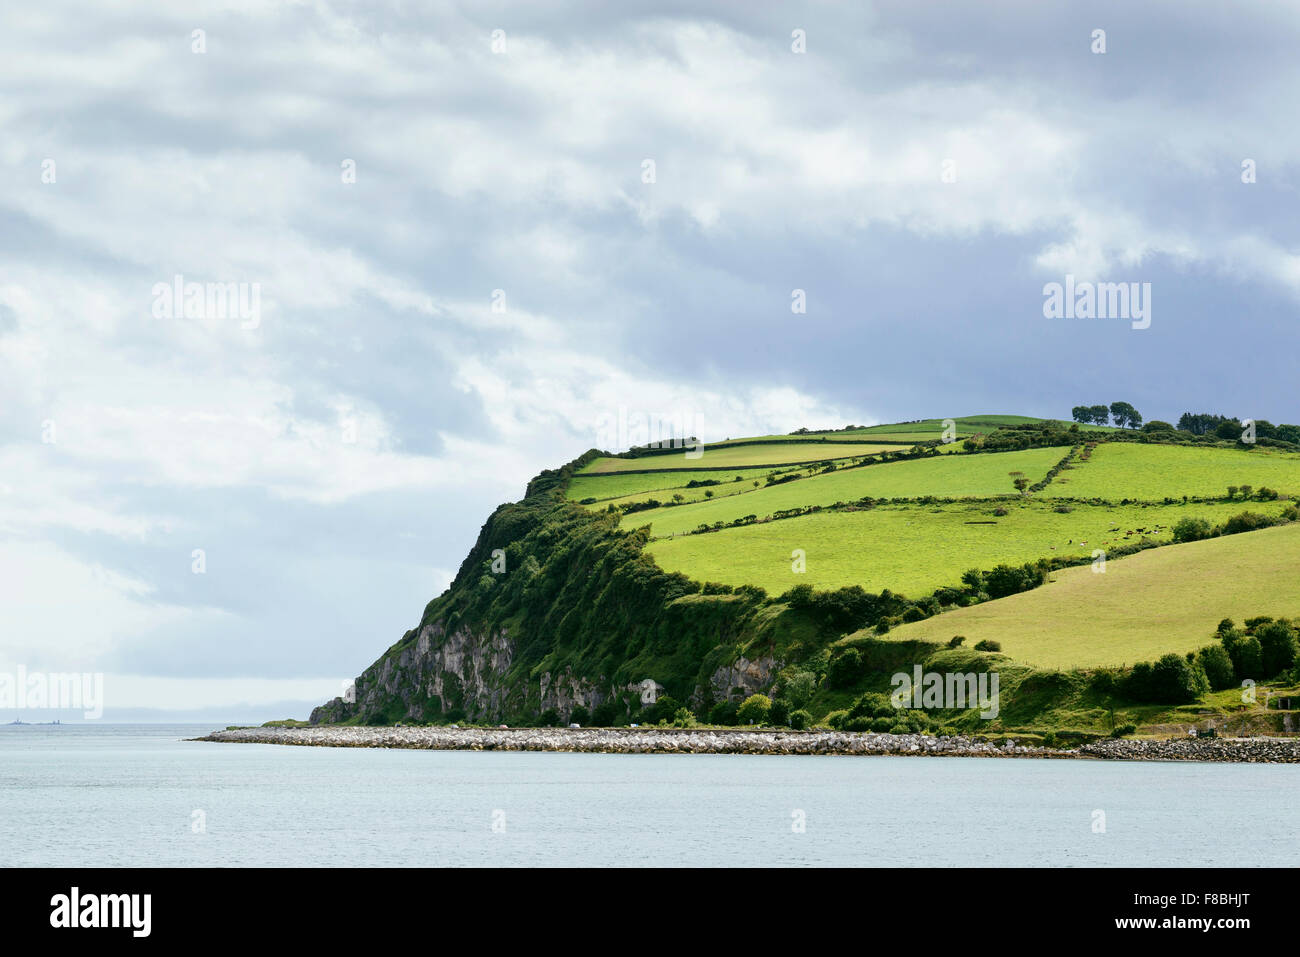 Cliff by the North Atlantic, County Antrim, Northern Ireland, United Kingdom - Stock Image